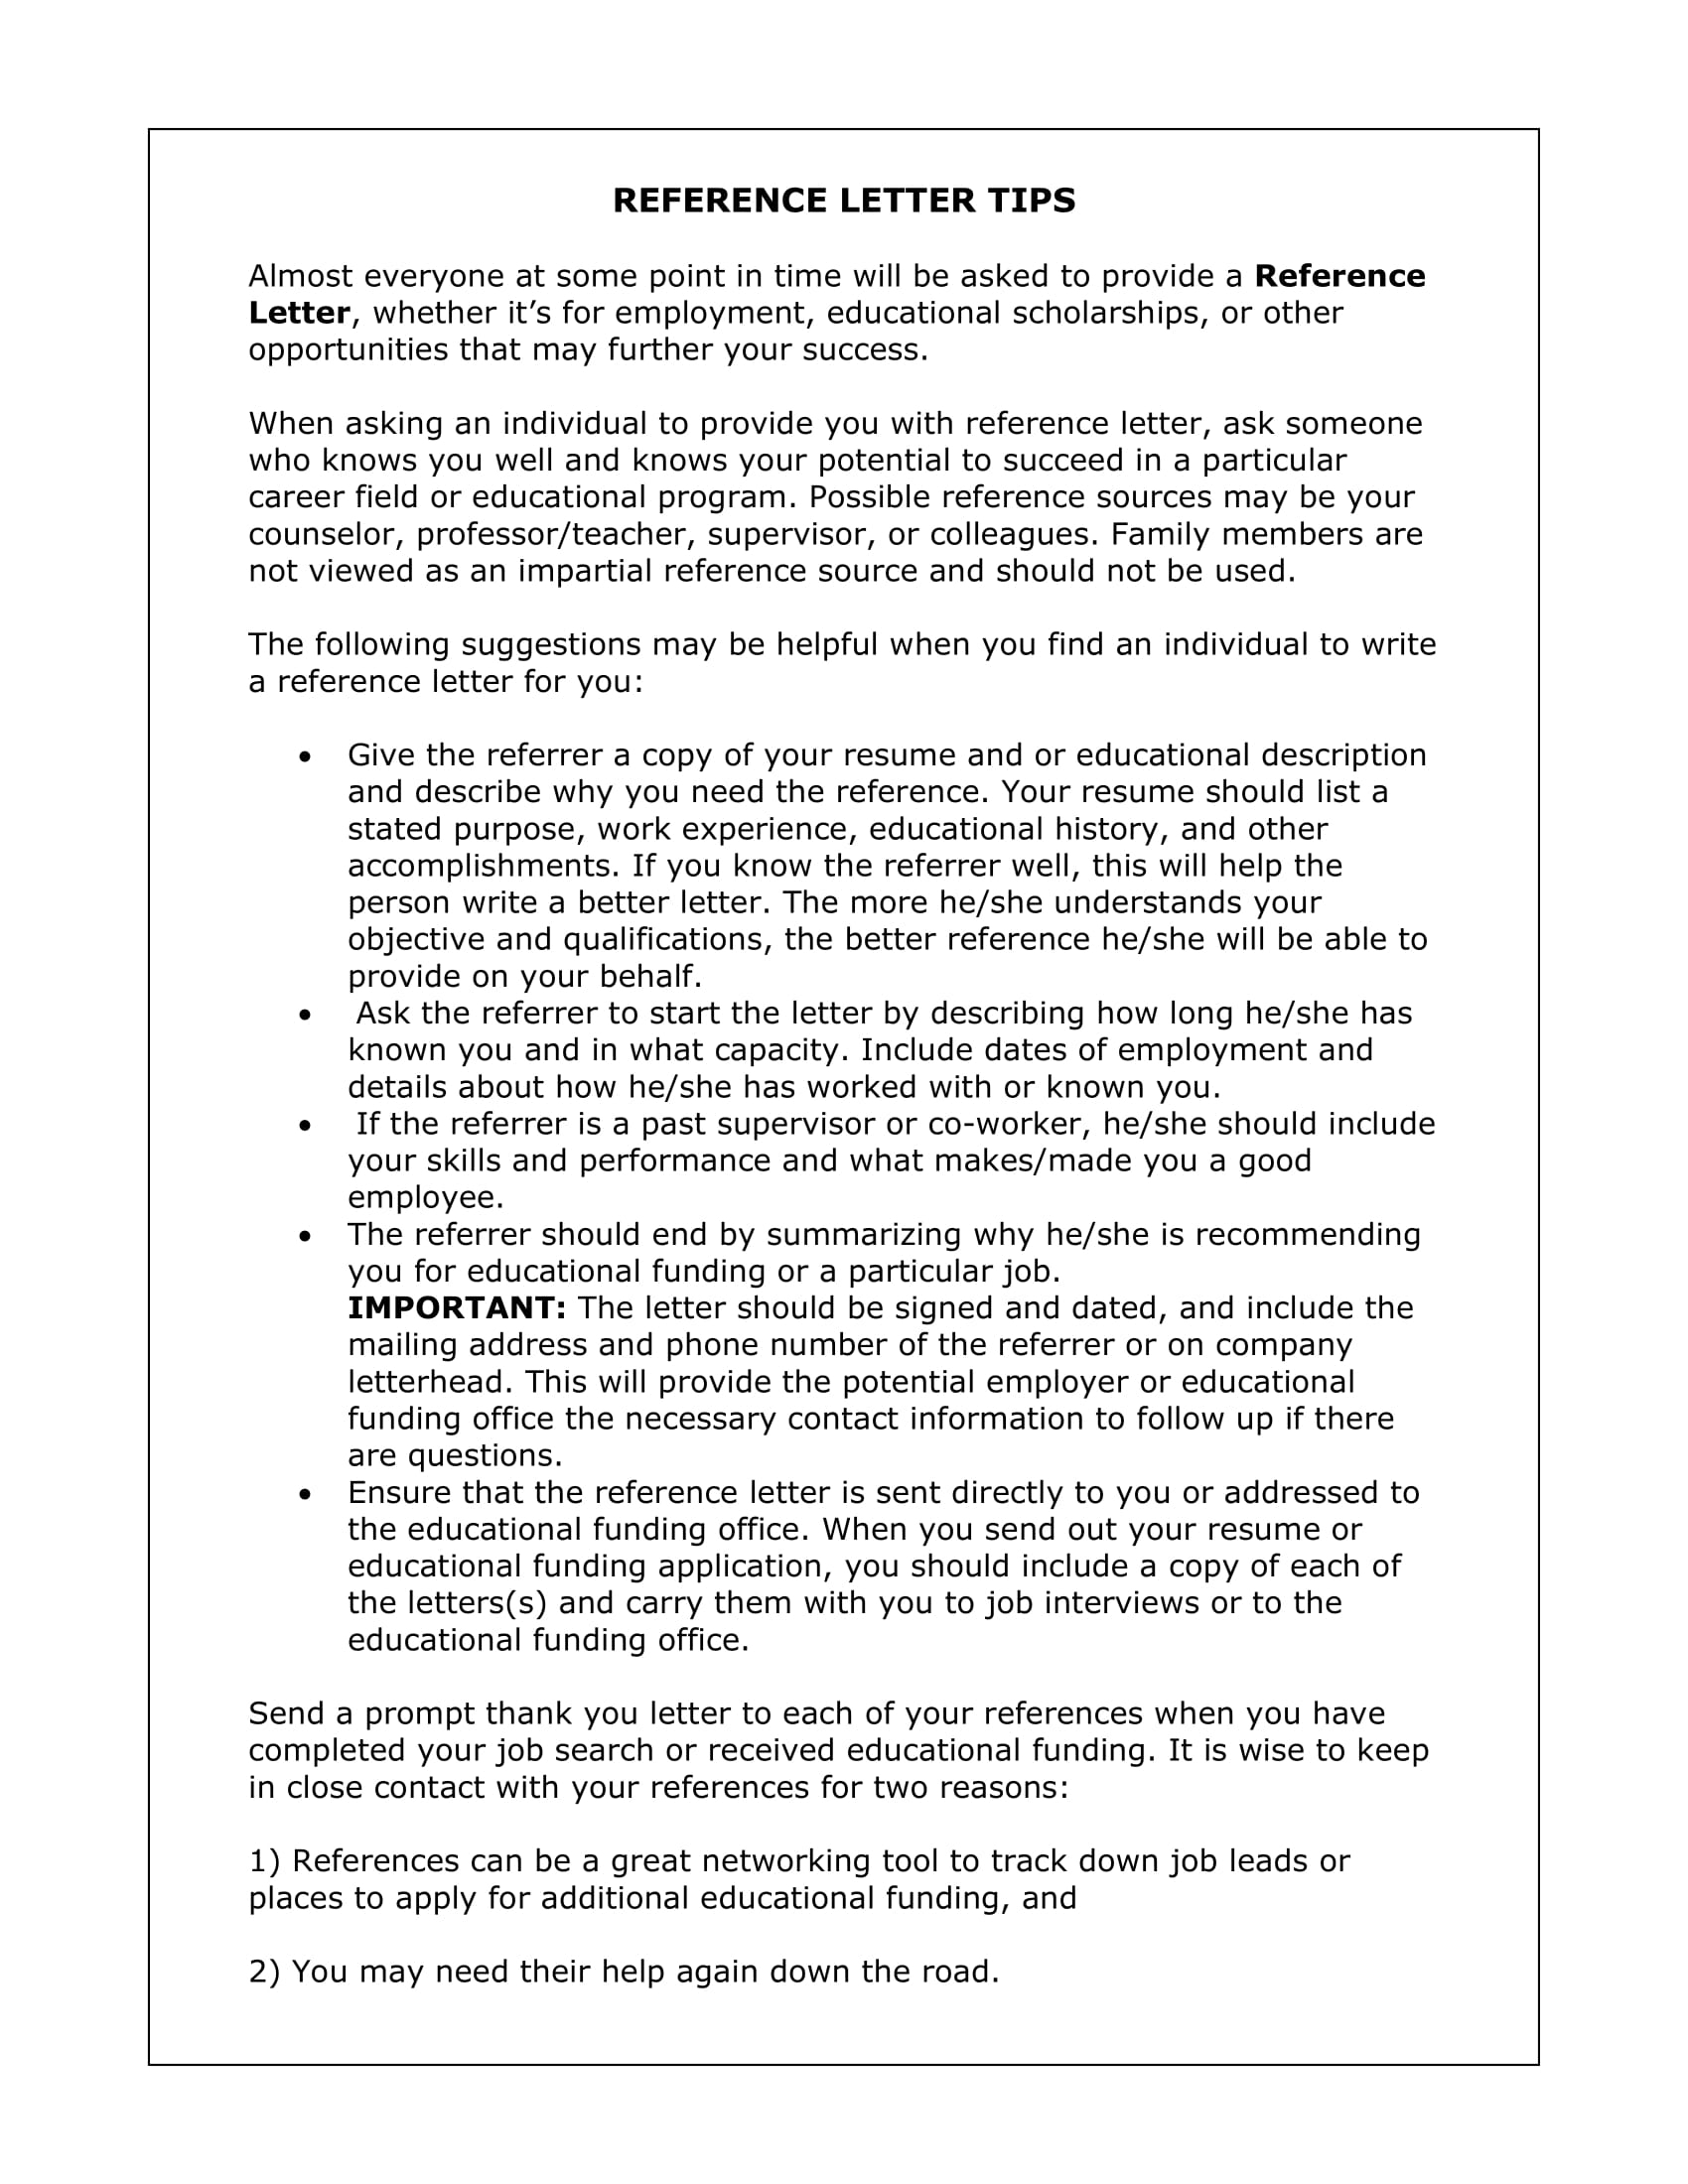 9+ Reference Letter from a Previous Employer Examples - PDF